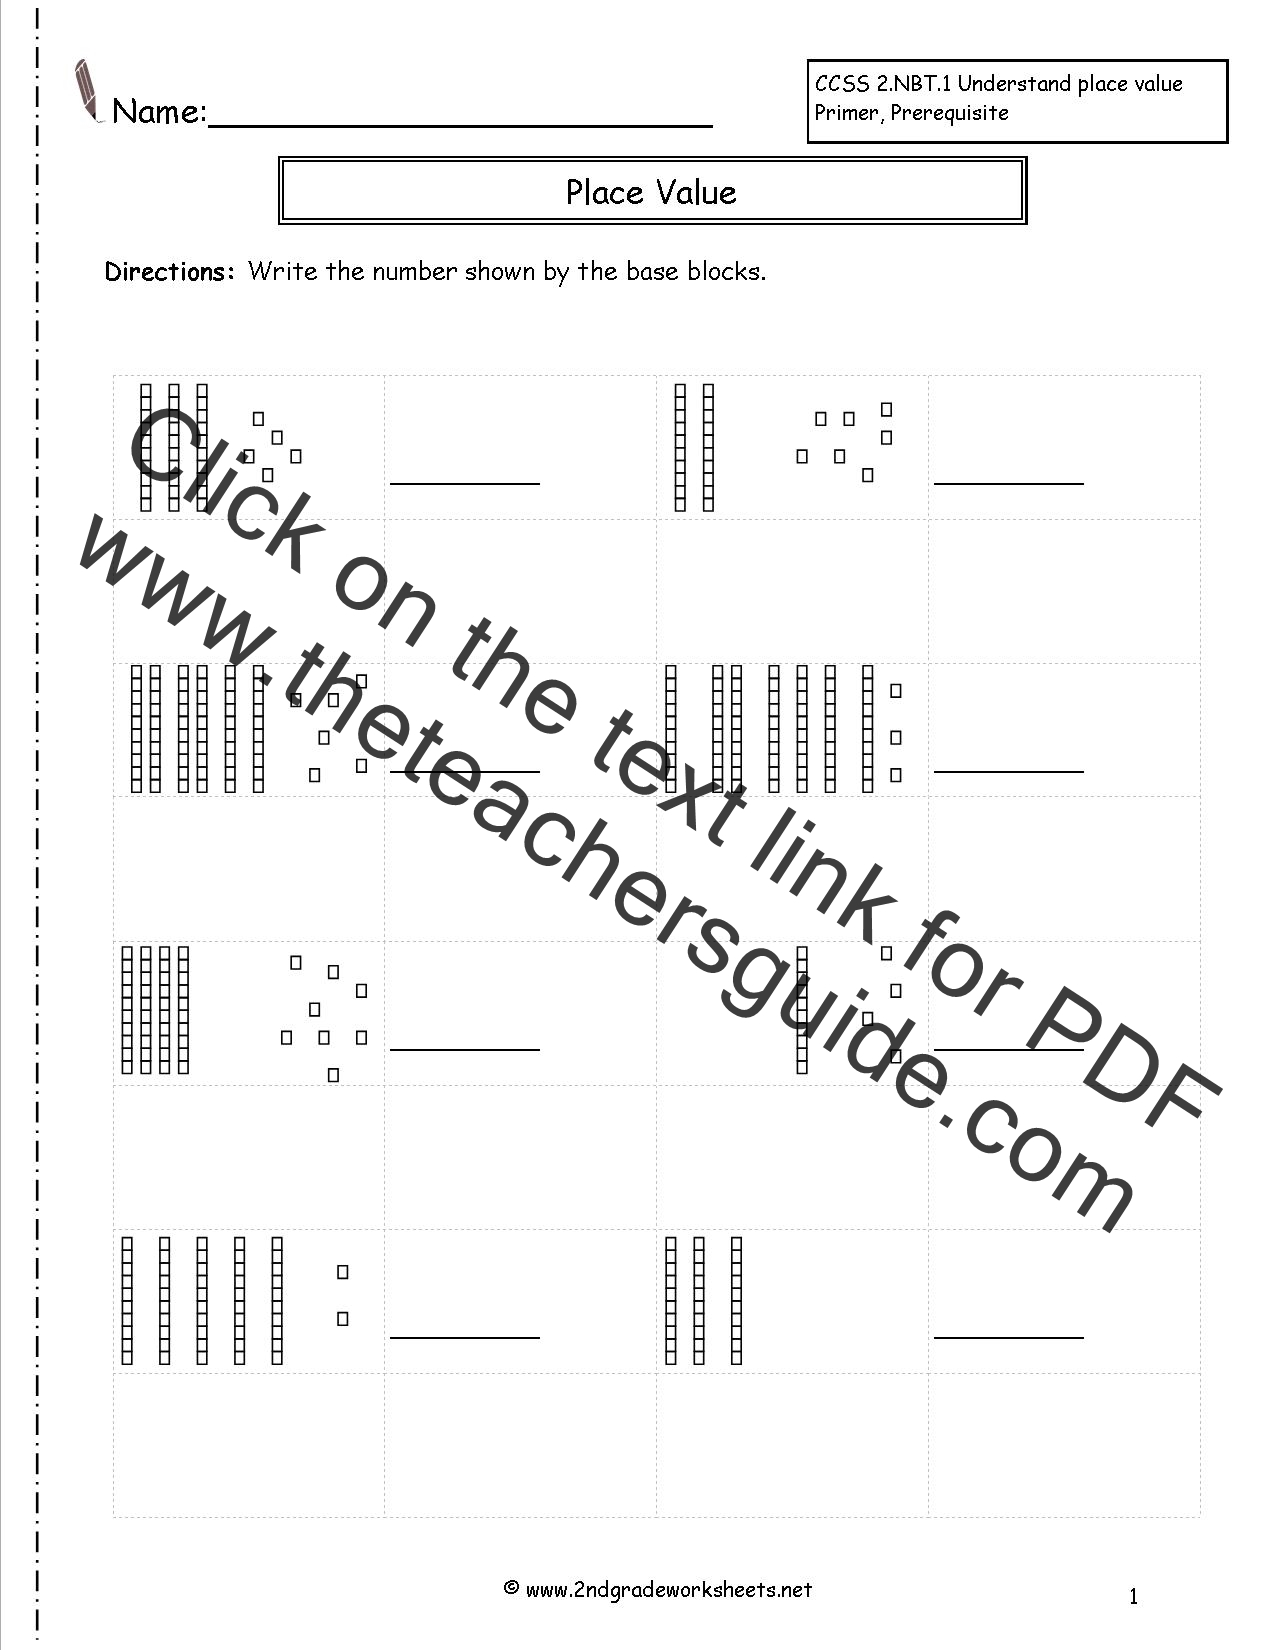 Second Grade Place Value Worksheets – Ones and Tens Worksheets